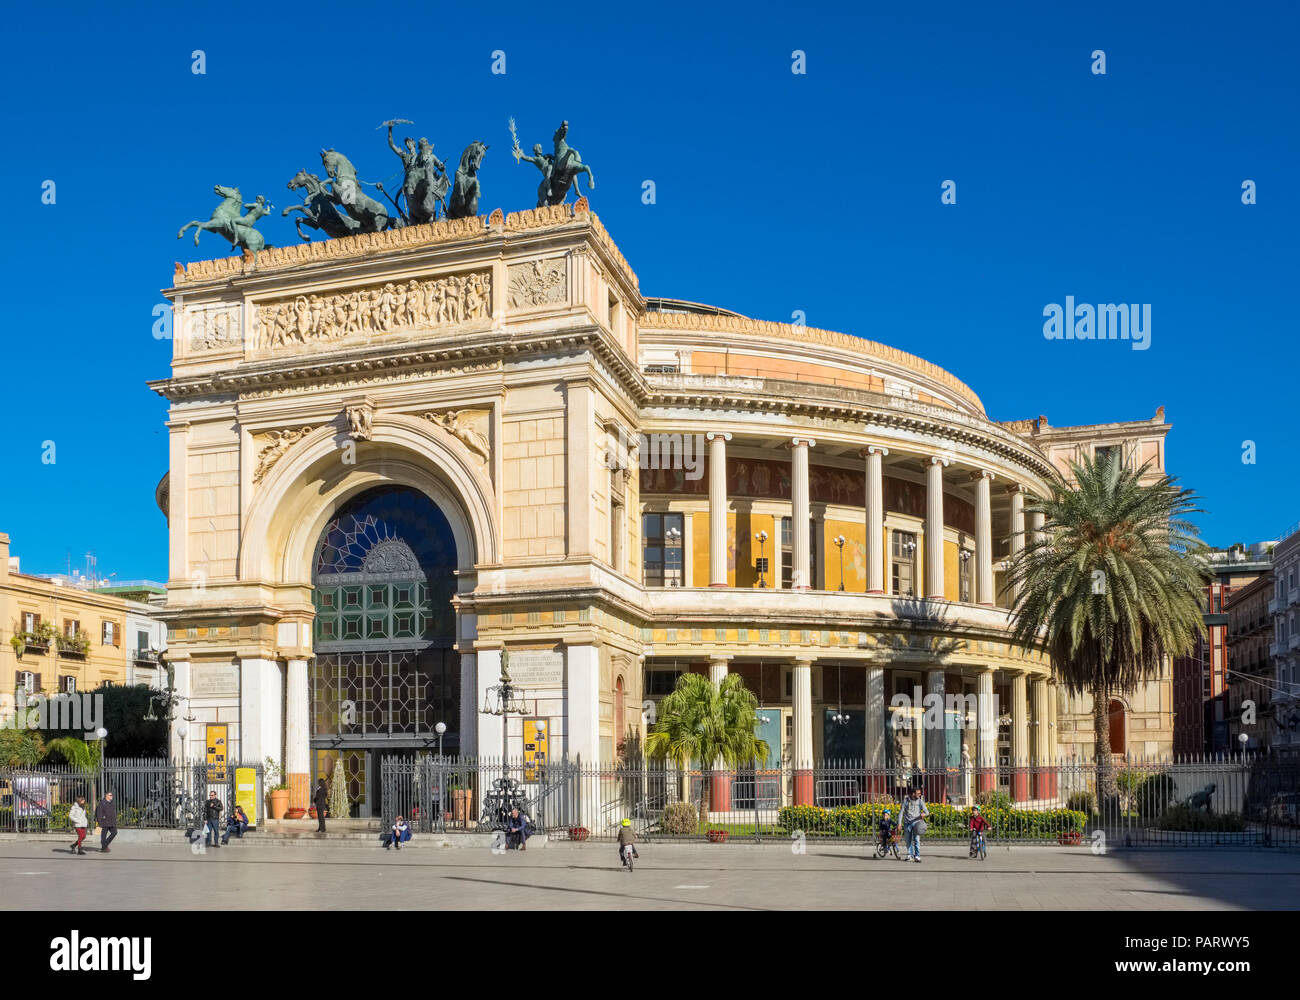 The Politeama Theatre, Teatro Politeama facade, Palermo, Sicily in Piazza Politeama with a bronze Quadriga - Stock Image